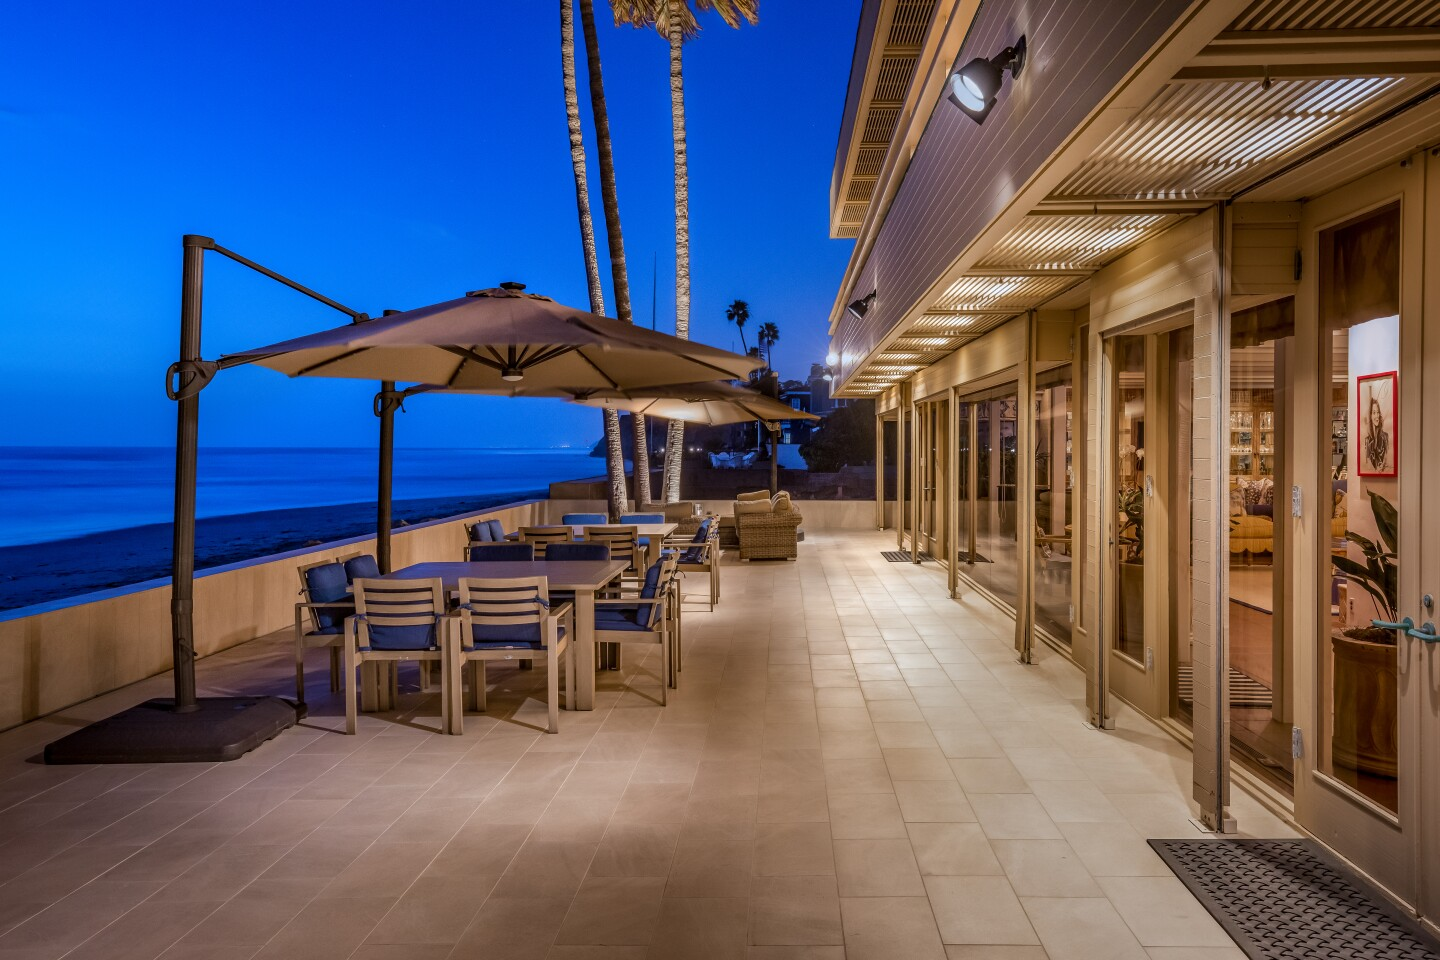 2936 Camino Del Mar sold for $22 million in August.